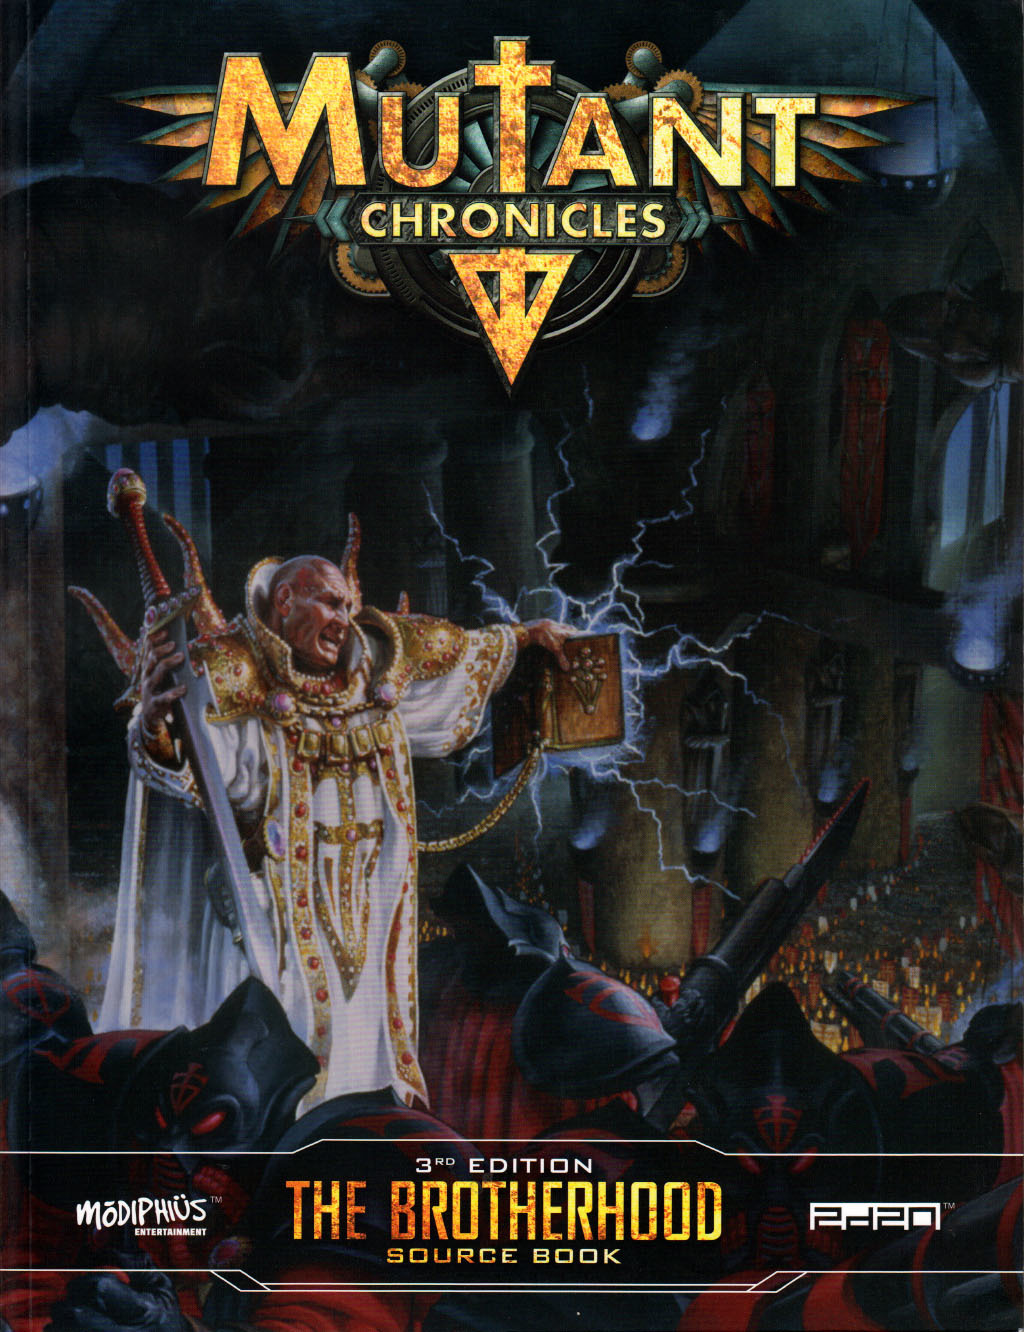 The Brotherhood source book (Mutant Chronicles 3rd edition)